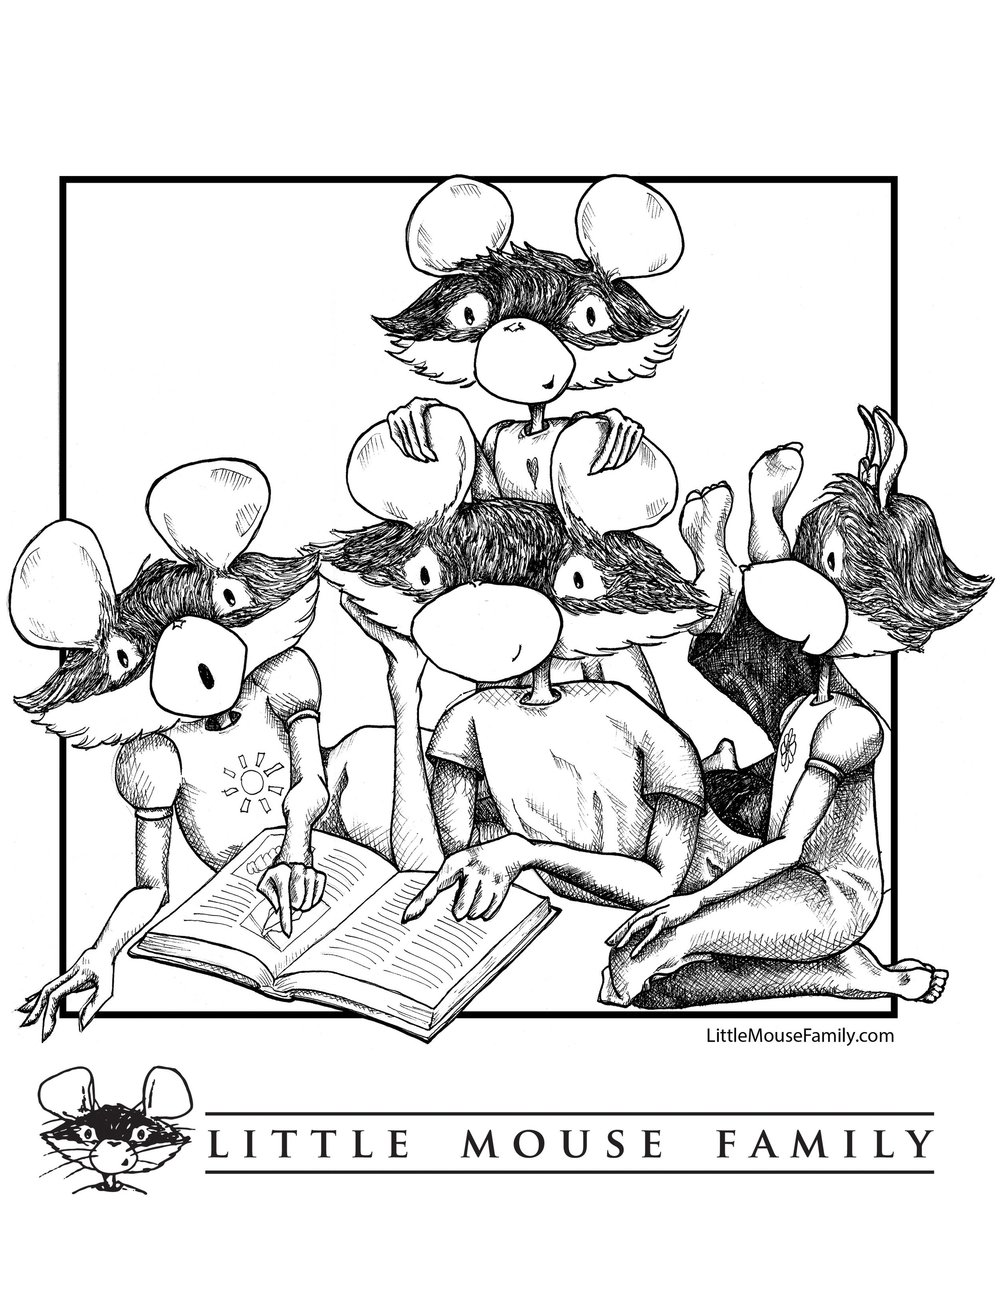 A Coloring Page from www.littlemousefamily.com